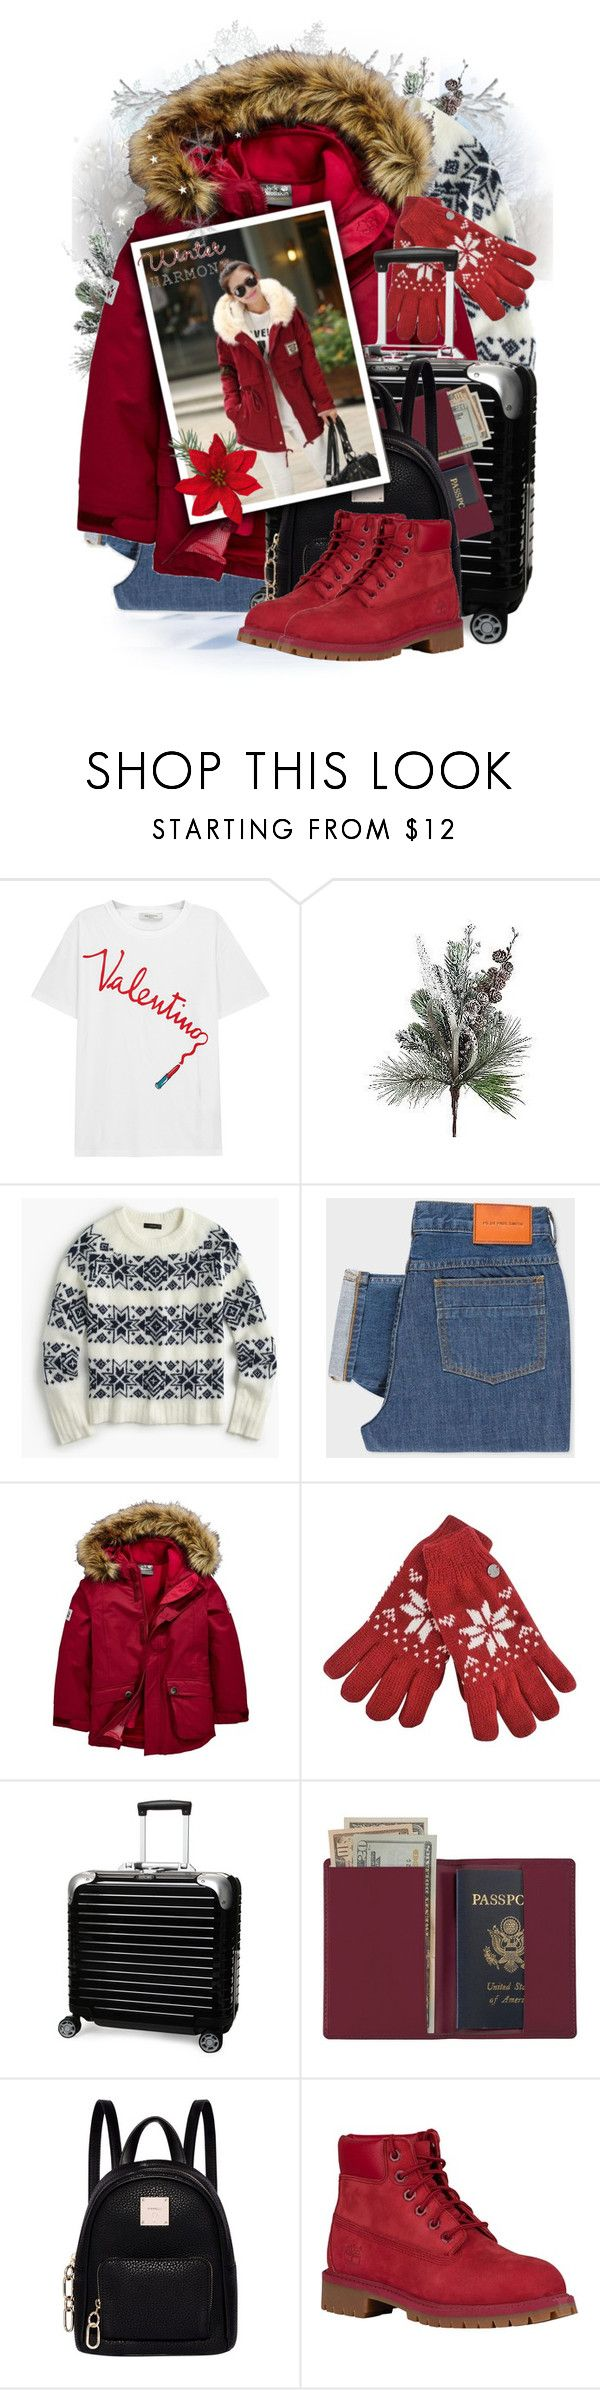 """""""Jack Wolfskin Elk Island 3In1 Parka"""" by tasha1973 ❤ liked on Polyvore featuring Valentino, Christian Ulbricht, J.Crew, PS Paul Smith, Jack Wolfskin, Rimowa, Royce Leather, Fiorelli and Timberland"""